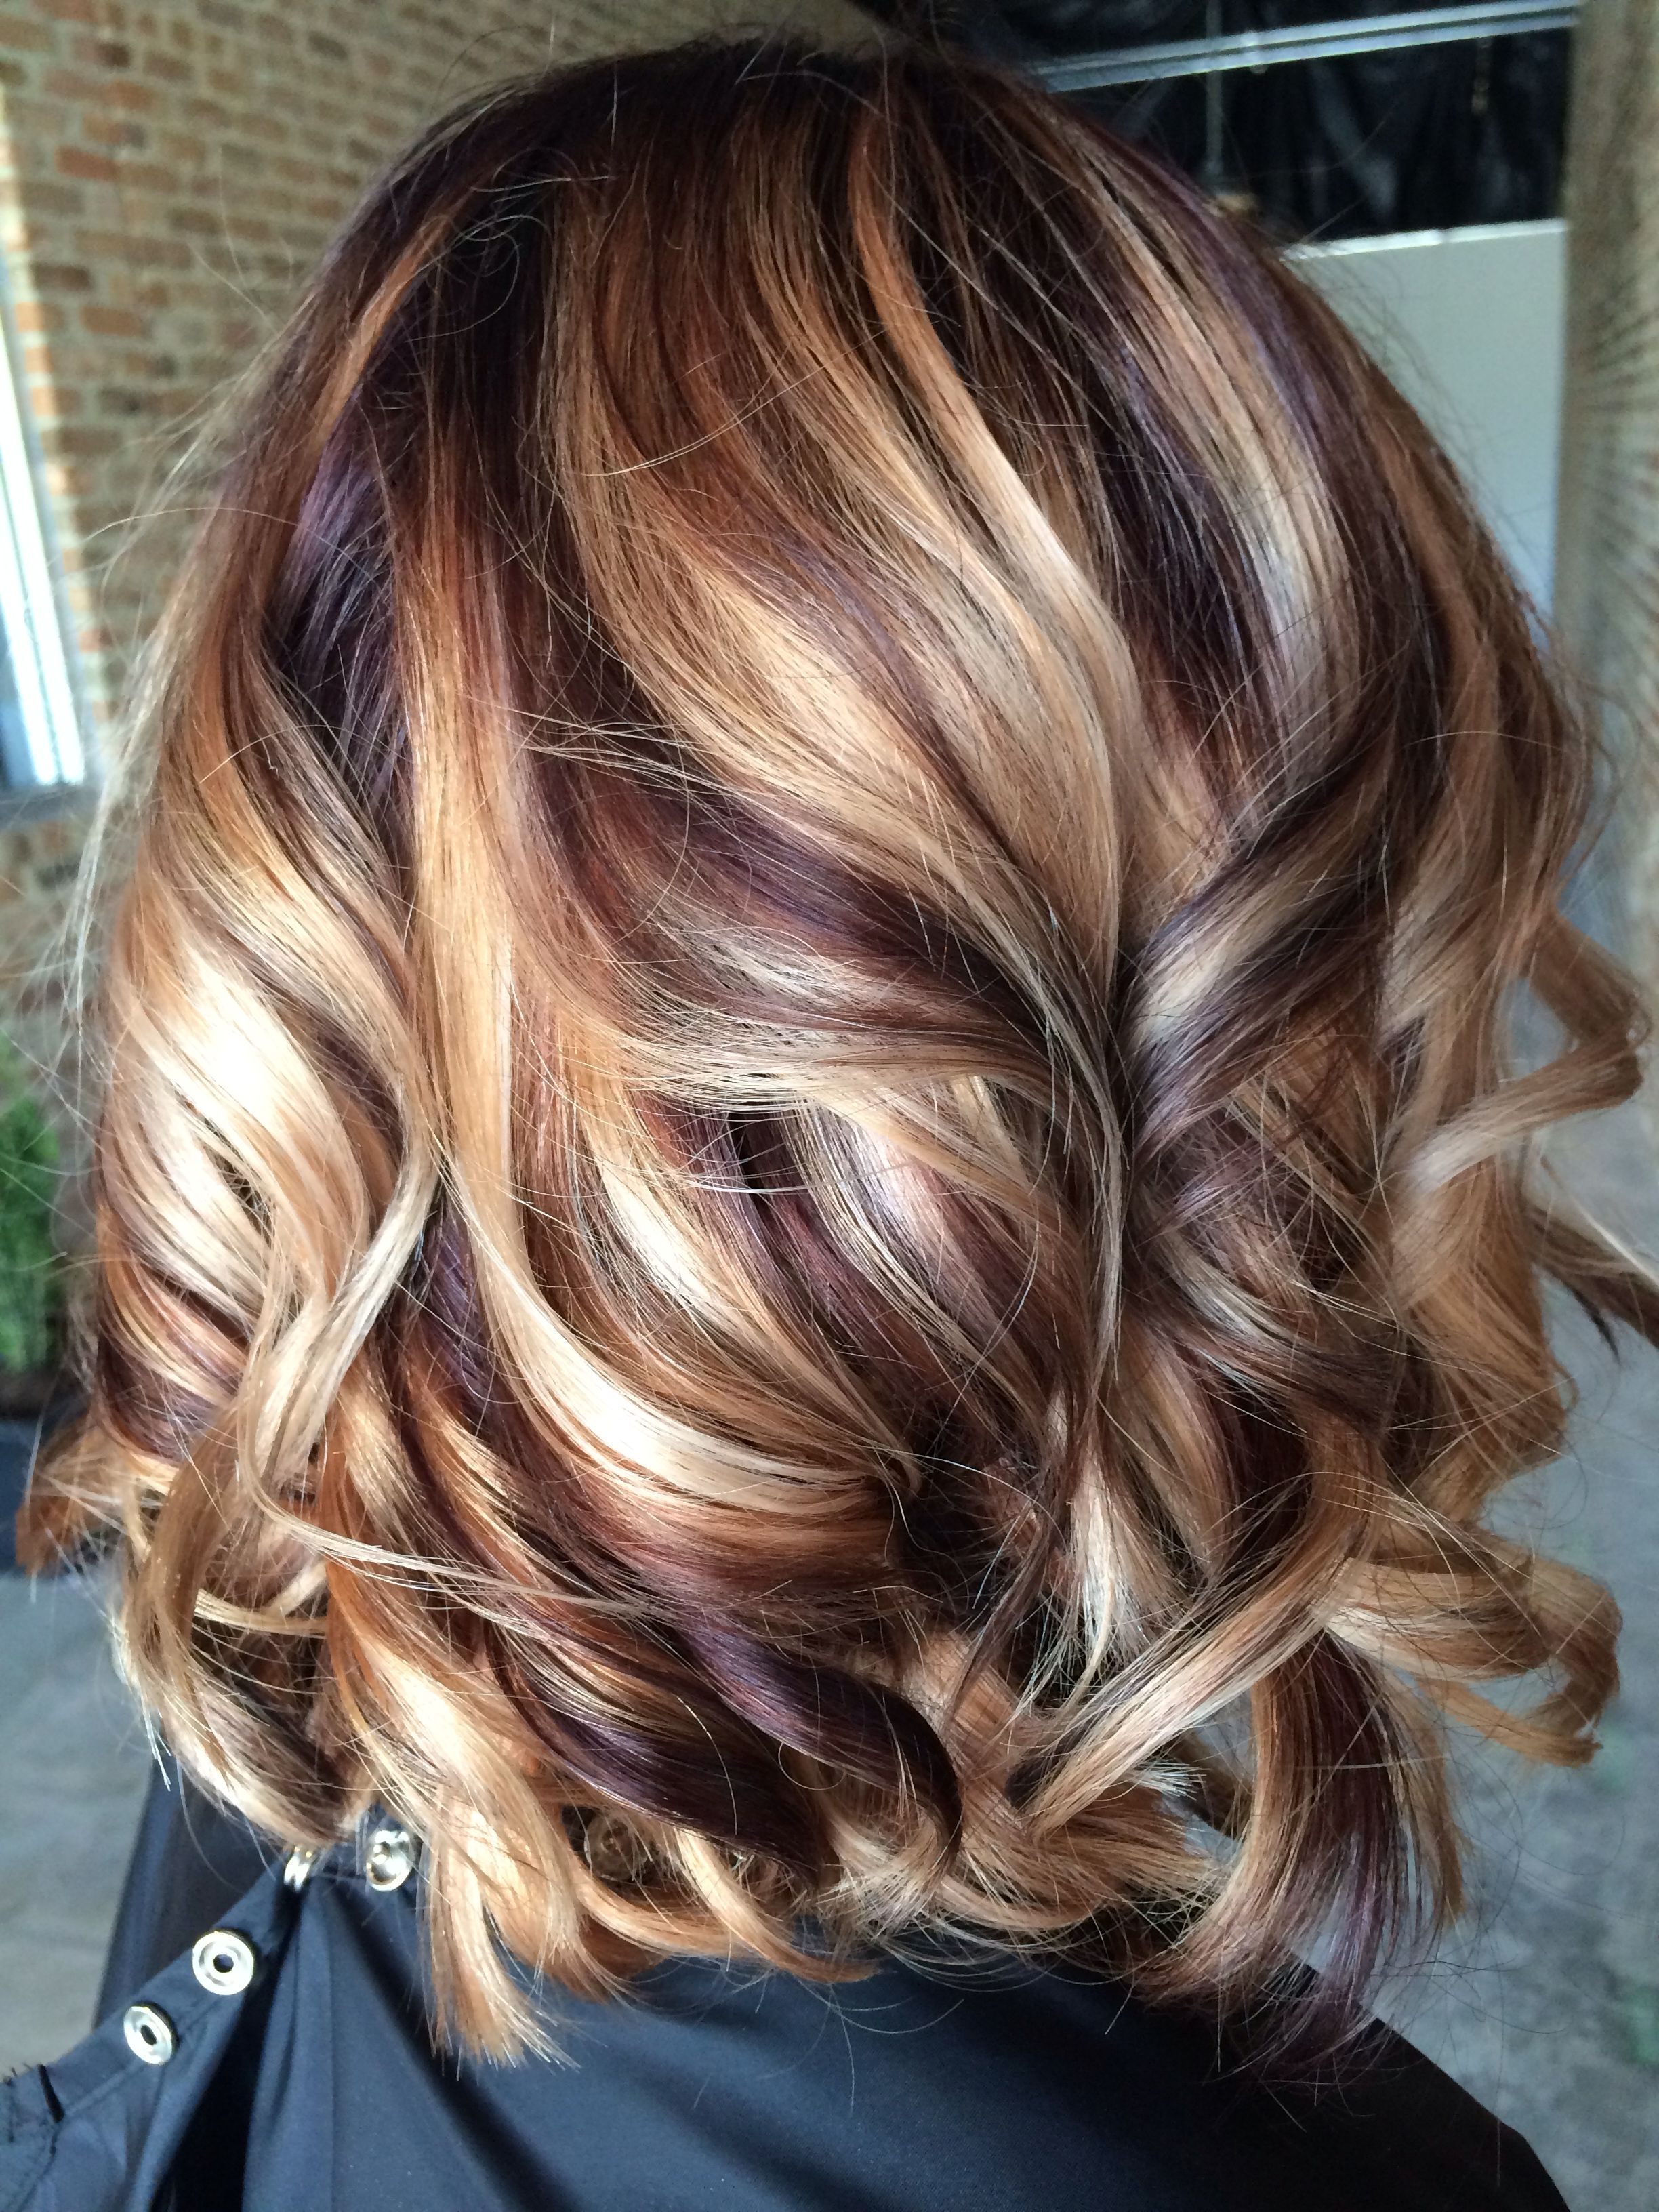 Hair Ideas Throughout Most Up To Date Dark Locks Blonde Hairstyles With Caramel Highlights (View 5 of 20)